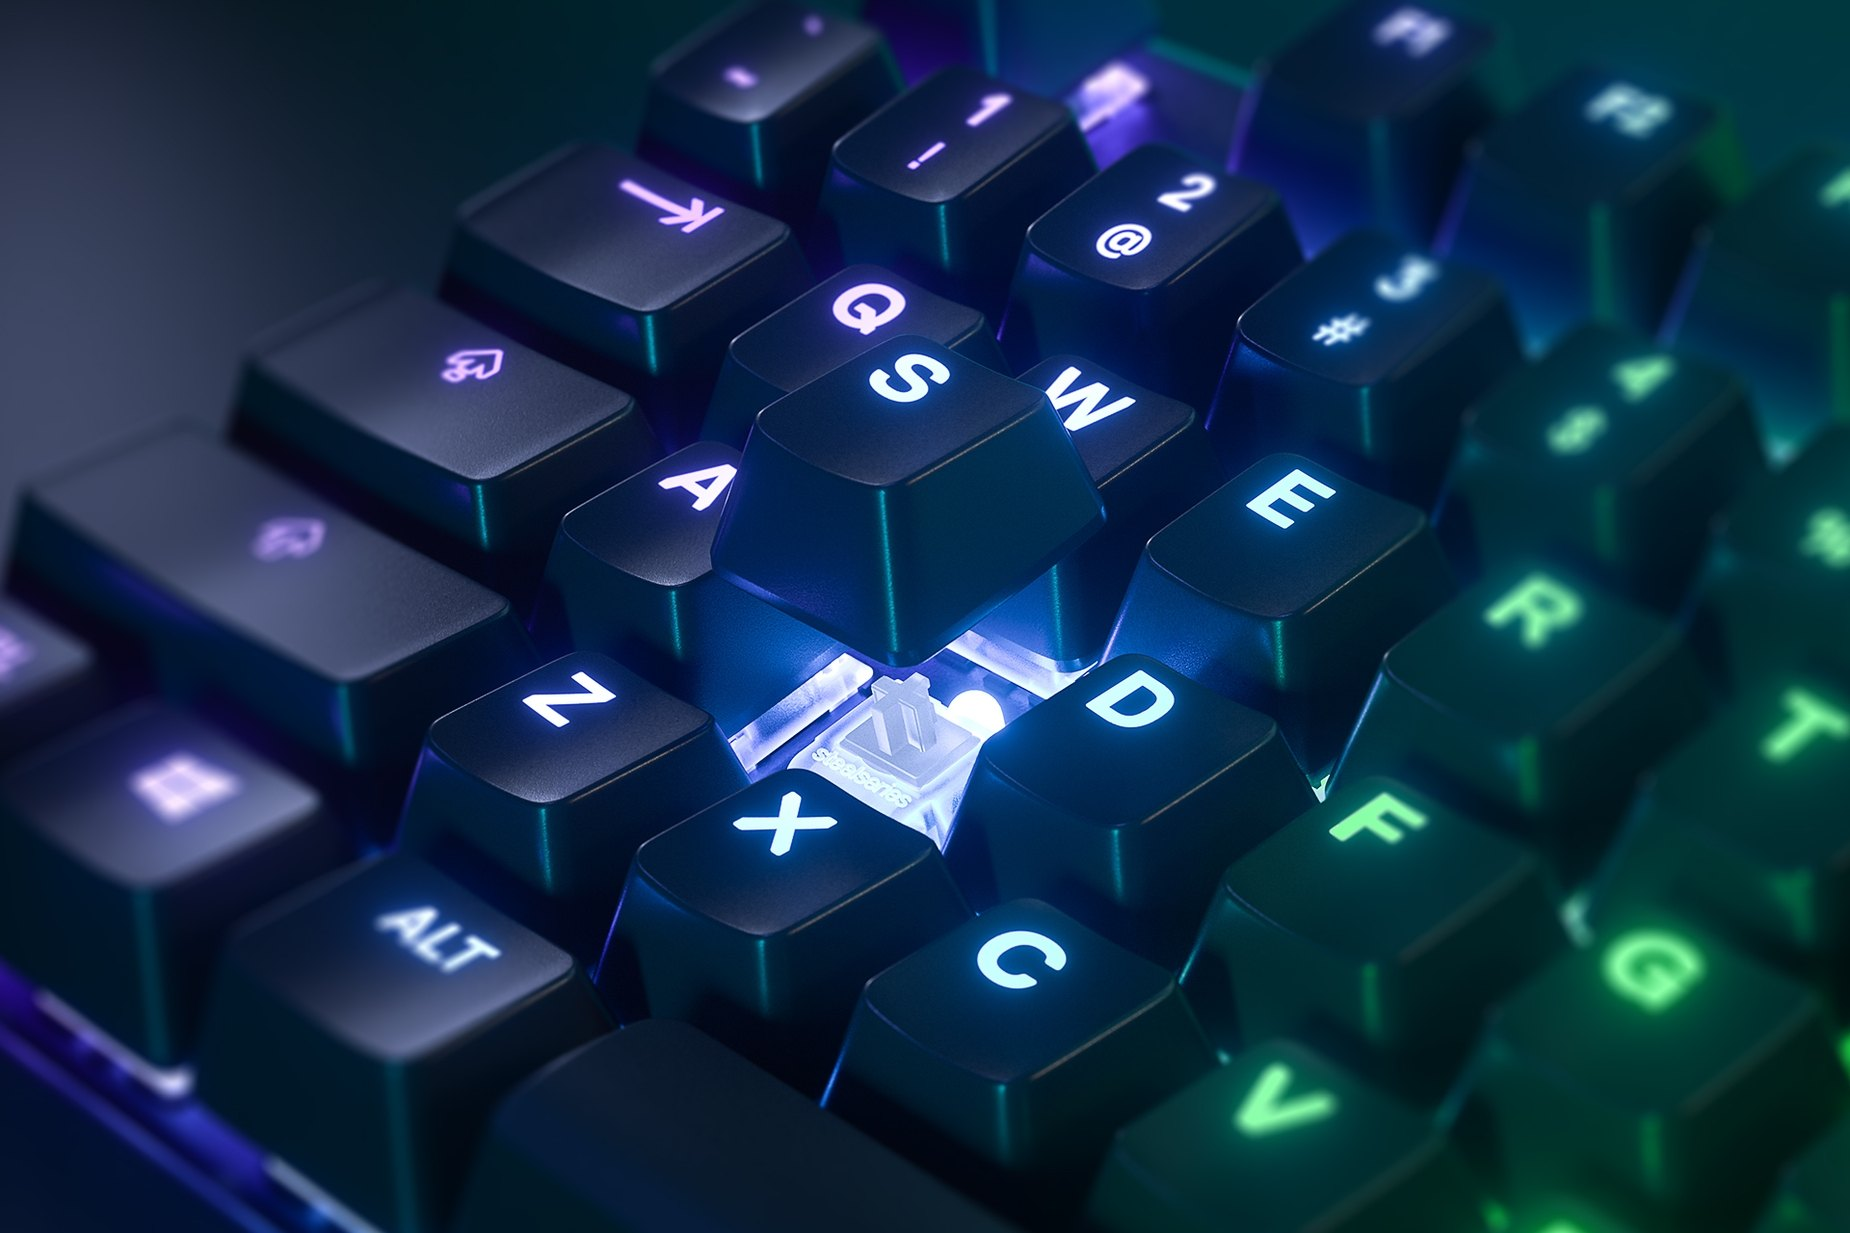 Zoomed in view of a single key on the Nordic - Apex Pro TKL gaming keyboard, the key is raised up to show the SteelSeries OmniPoint Adjustable Mechanical Switch underneath